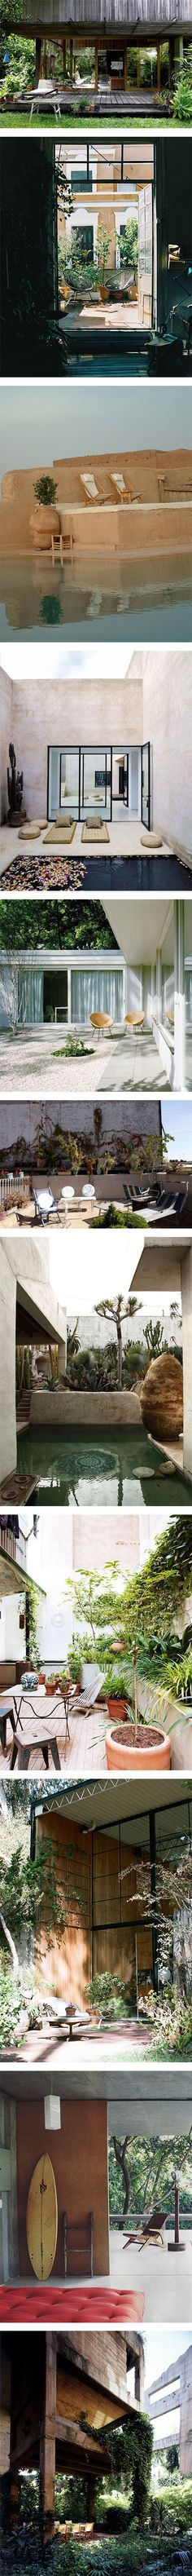 11 houses with amazing outdoor spaces via Nuji.com